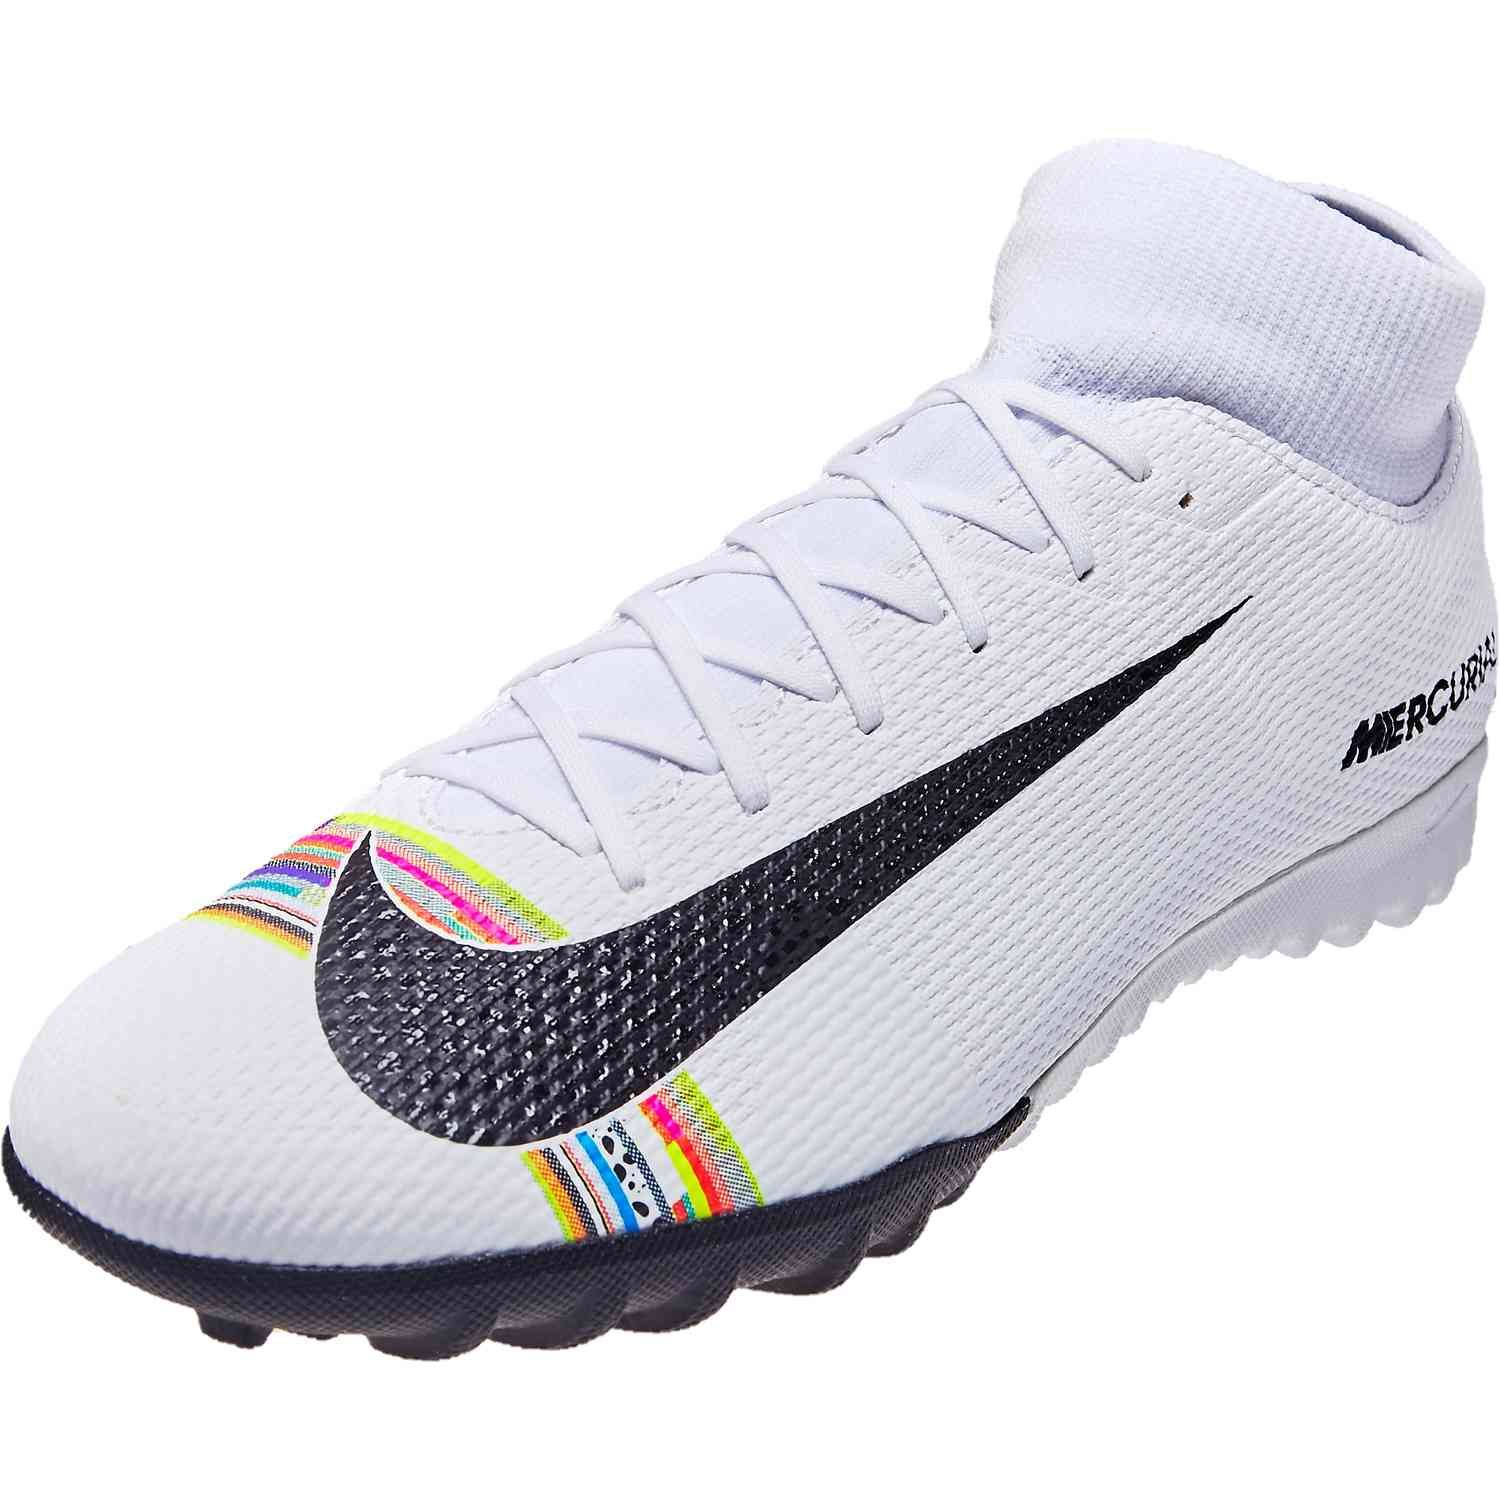 Nike Mercurial Superfly 6 Academy TF </p>                     </div> </div>          <!-- tab-area-end --> </div> <!--bof also purchased products module-->  <!--eof also purchased products module--> <!--bof also related products module--> <!--eof also related products module--> <!--bof Prev/Next bottom position -->         <!--eof Prev/Next bottom position --> <!--bof Form close--> </form> <!--bof Form close--> </div> <div style=